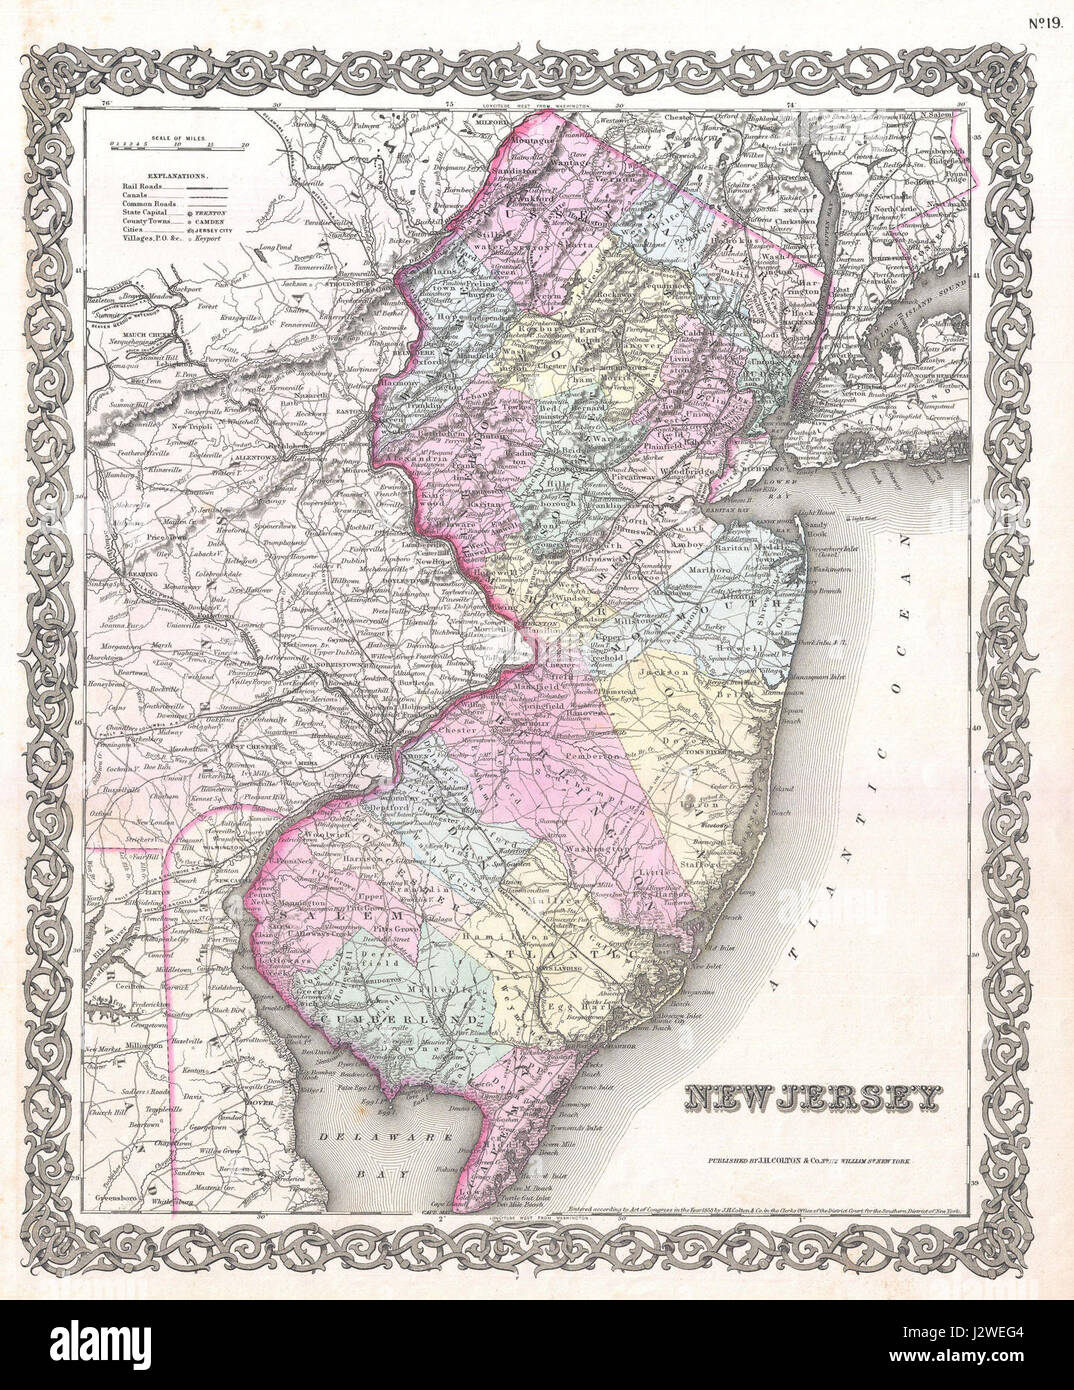 1855 Colton Map of New Jersey - Geographicus - NewJersey-colton-1855 - Stock Image